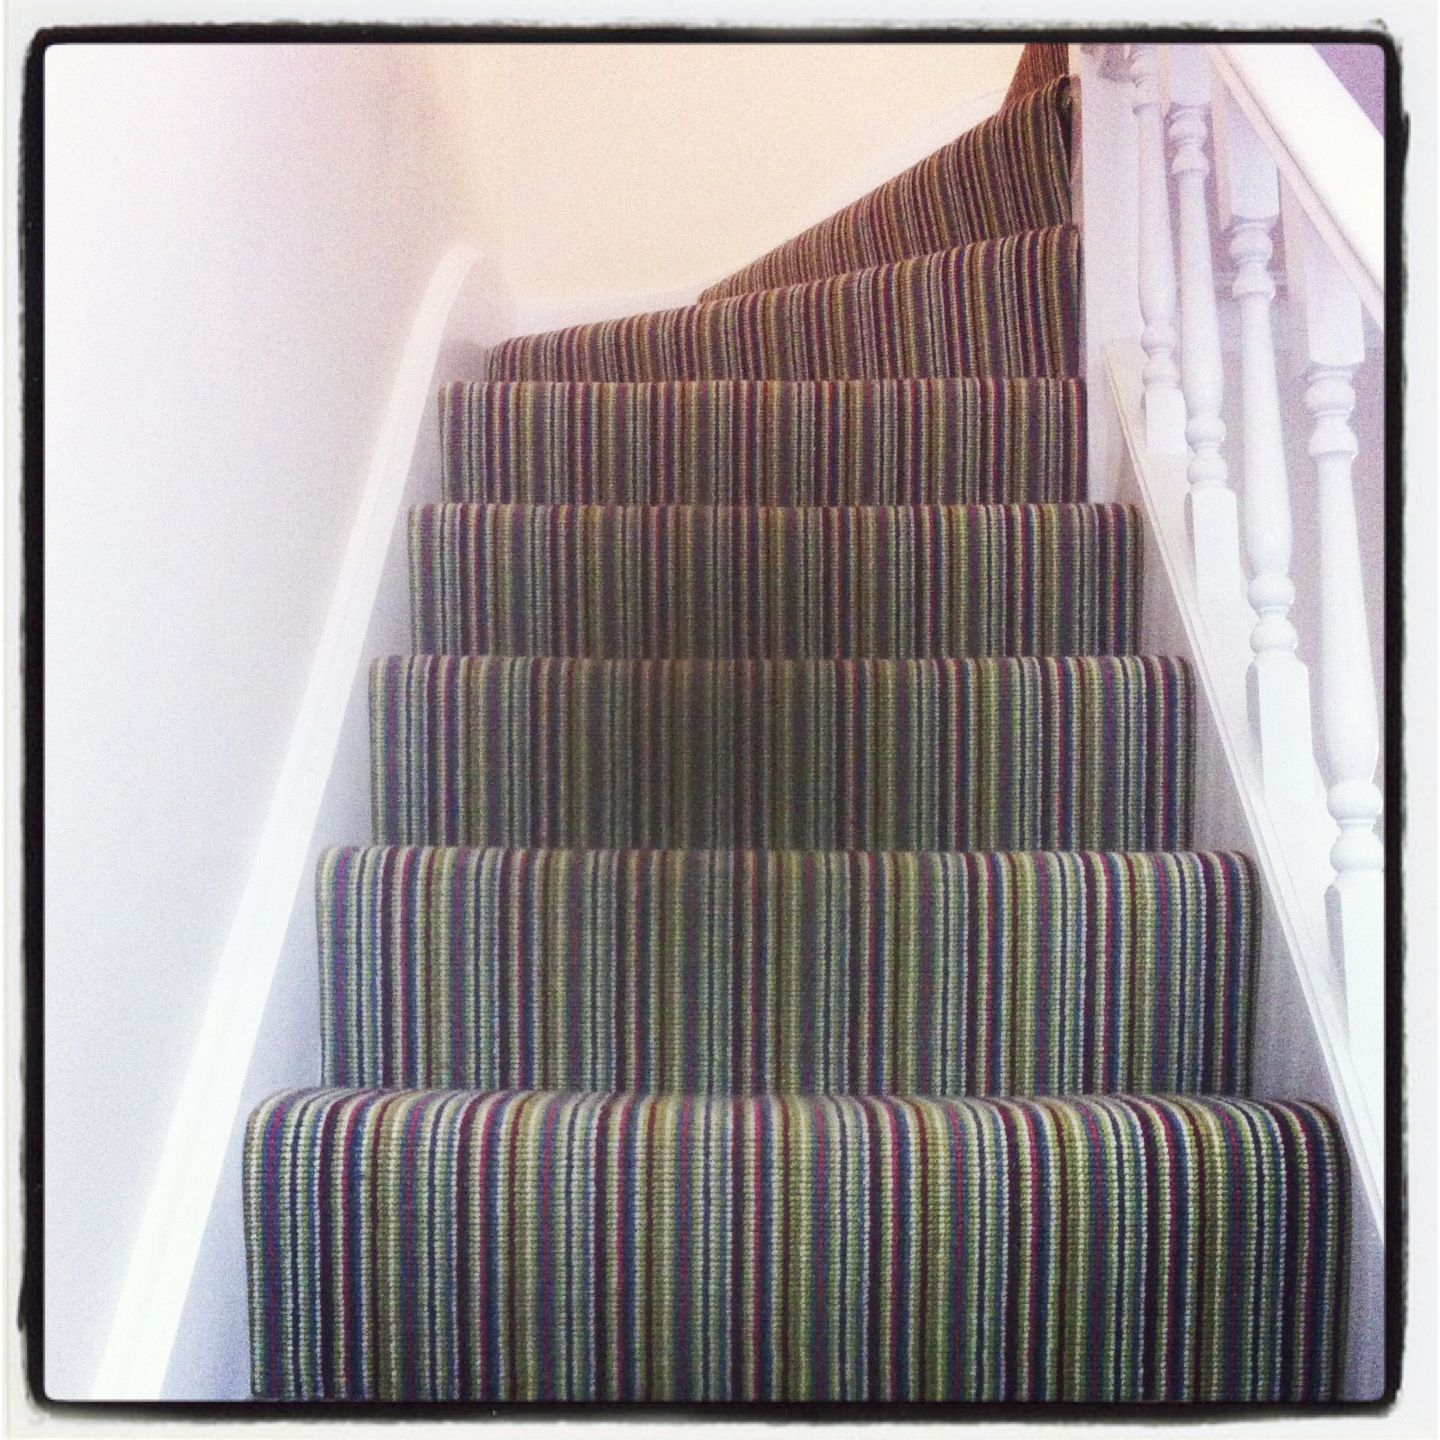 Liking This On Stairs My Friend Had It Instead Of | Best Carpet For High Traffic Areas Stairs